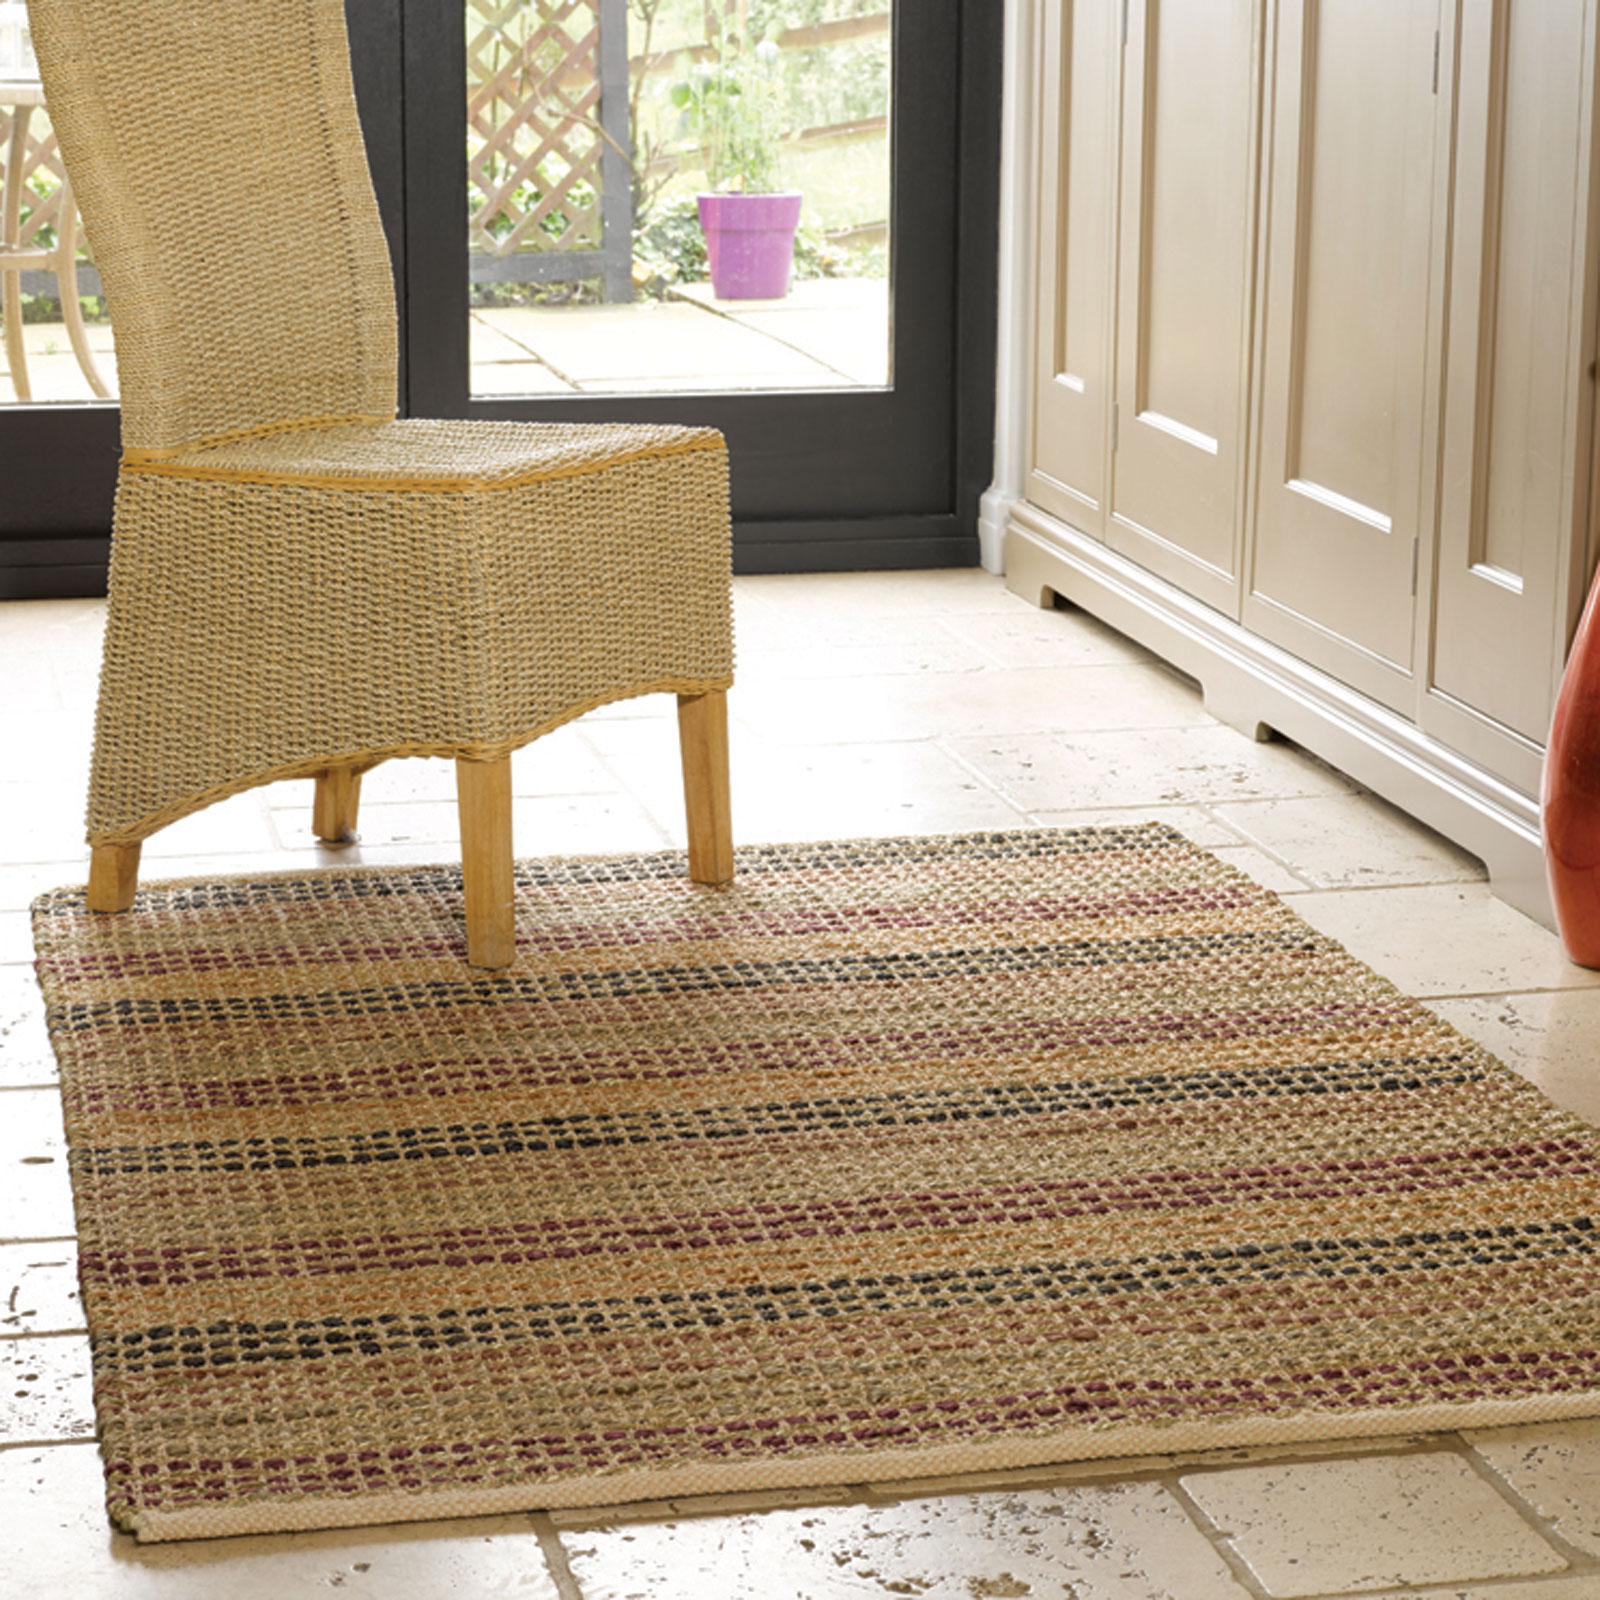 Natural Living Seagrass Rugs in Terracotta